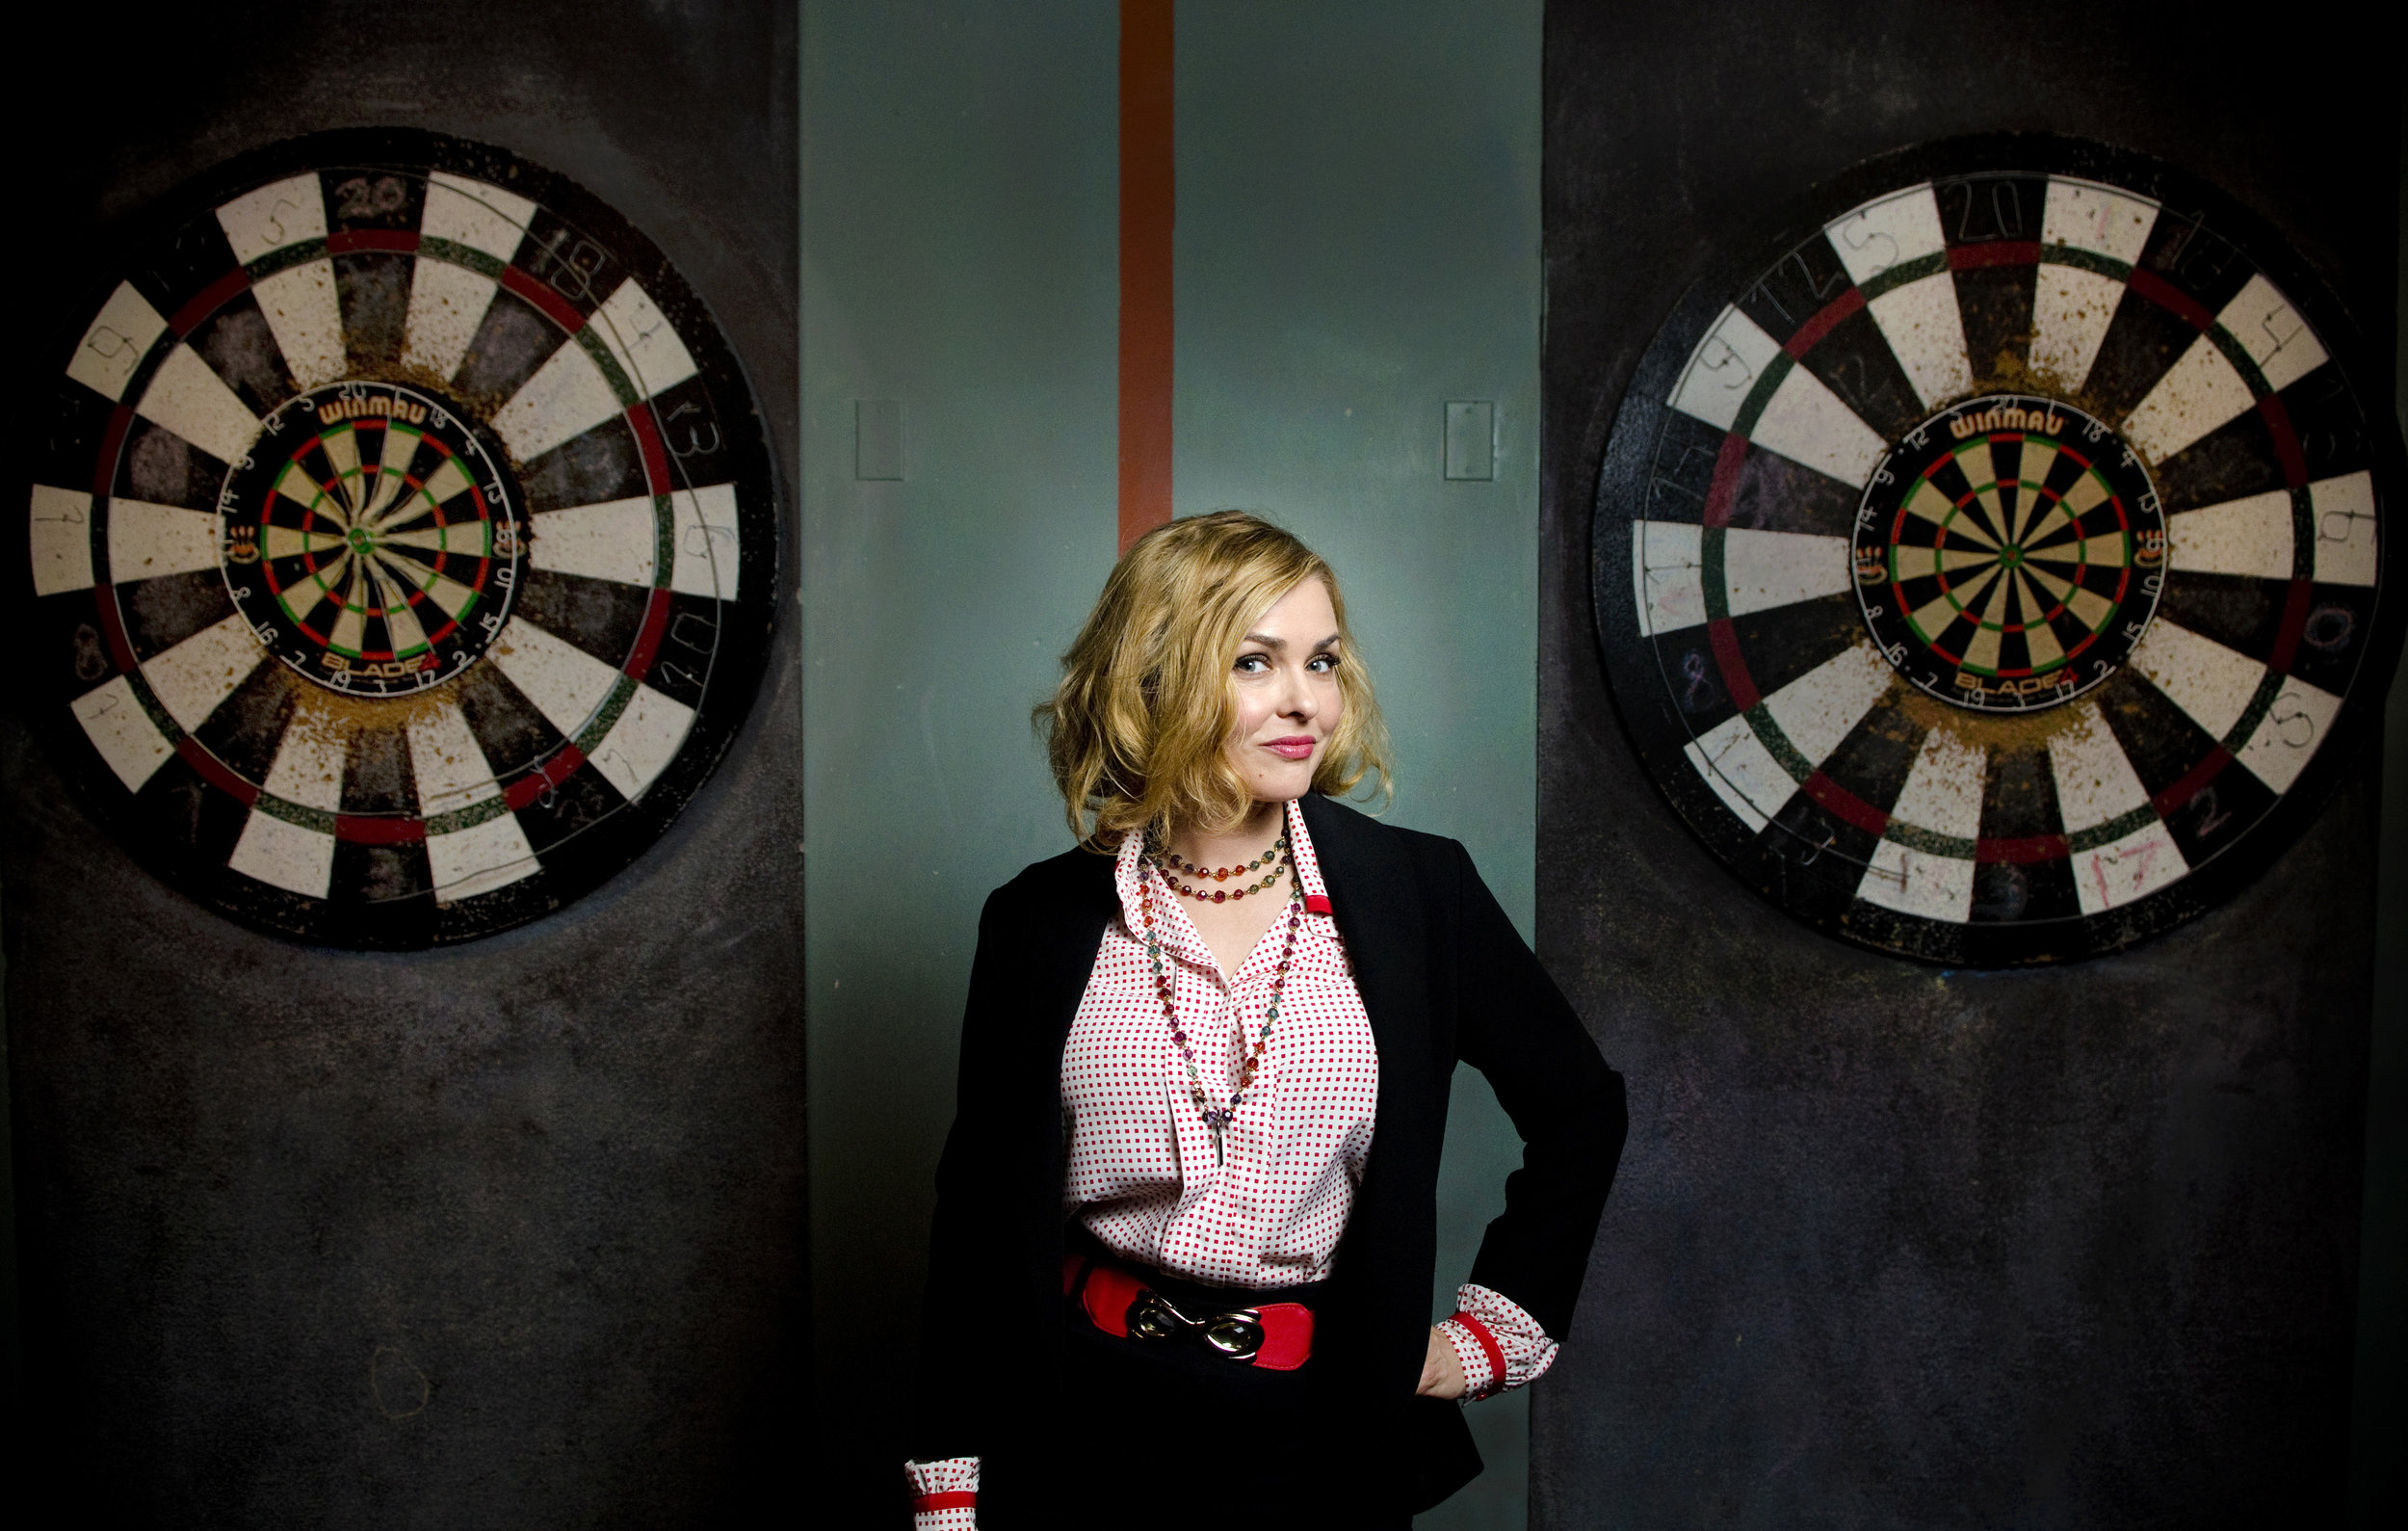 Actor and 1992 Playboy Playmate of the Year Corinna Harney of the interactive comedy show Alibi poses during a cast portrait session at Gold Spike in Las Vegas, Saturday, March 7, 2015.